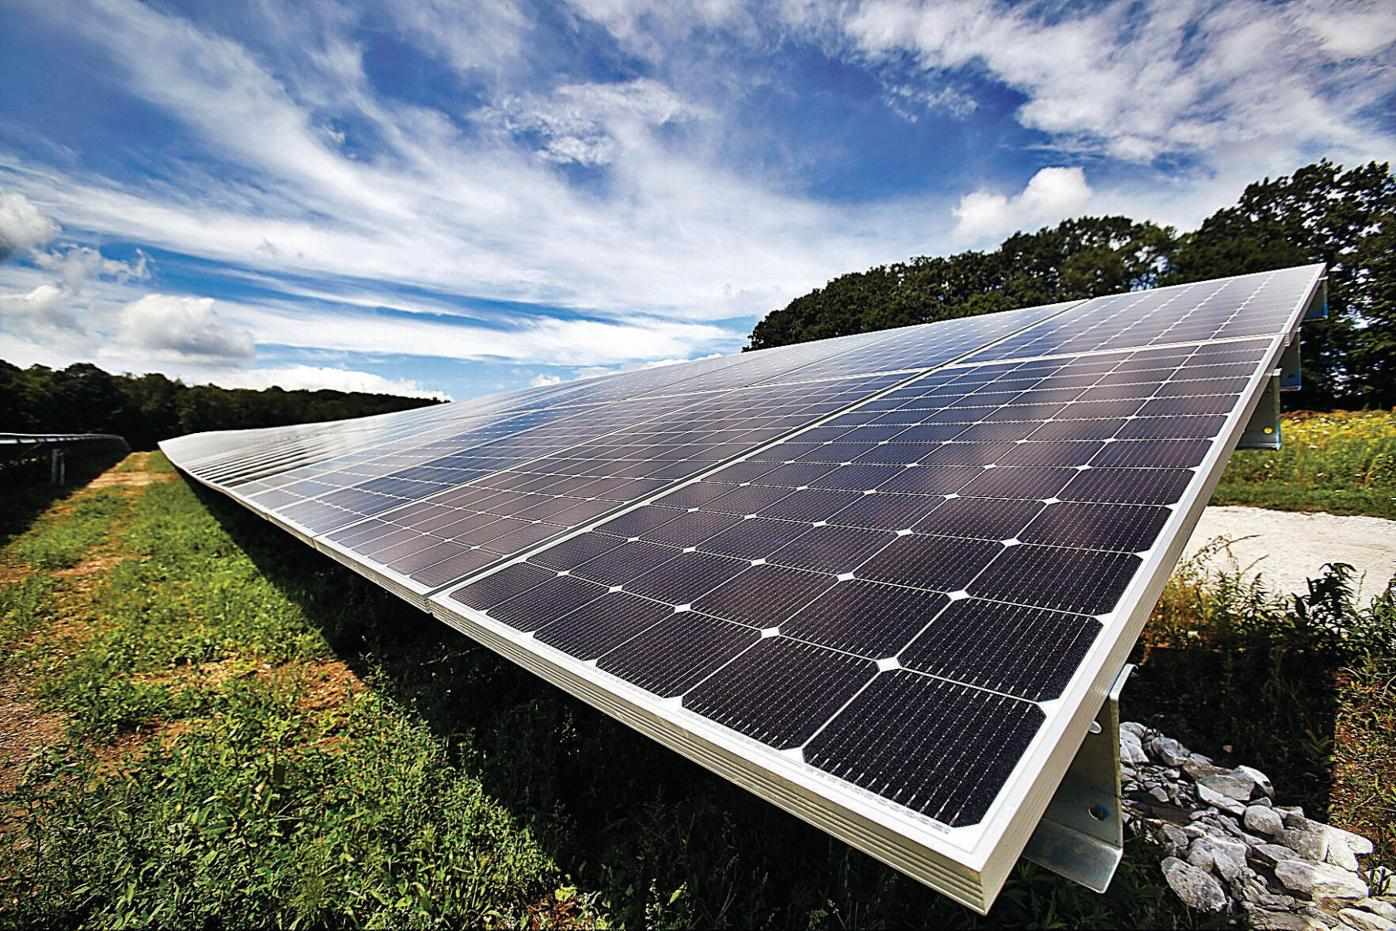 Grid strained by new solar farms